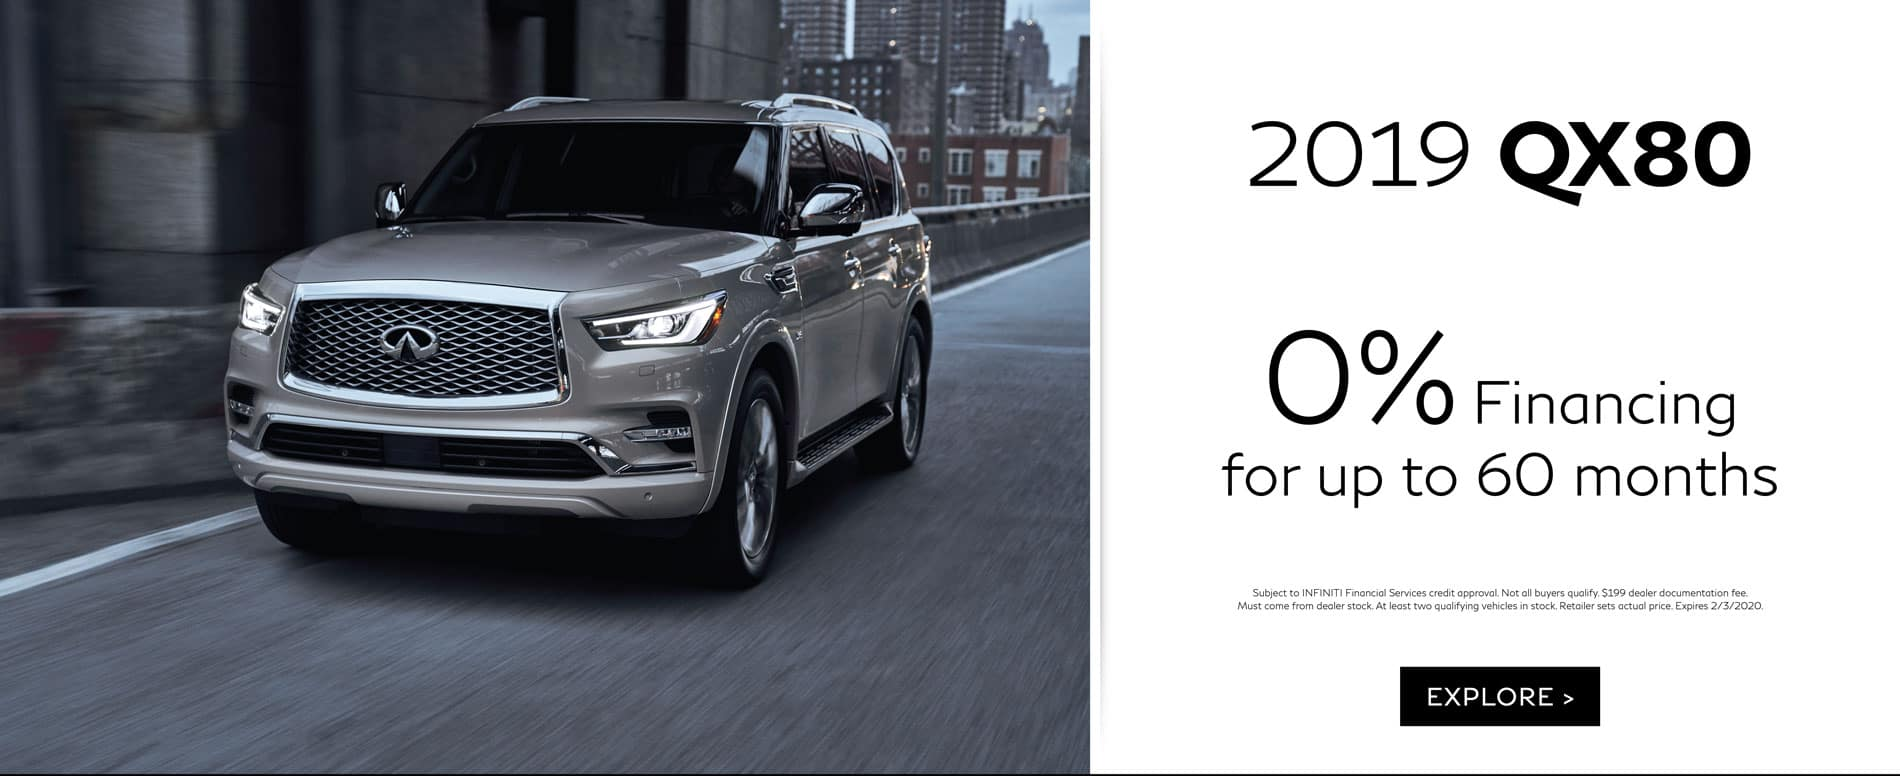 DR INFINITI South January OX80 Offer | 0% APR for 60 mos